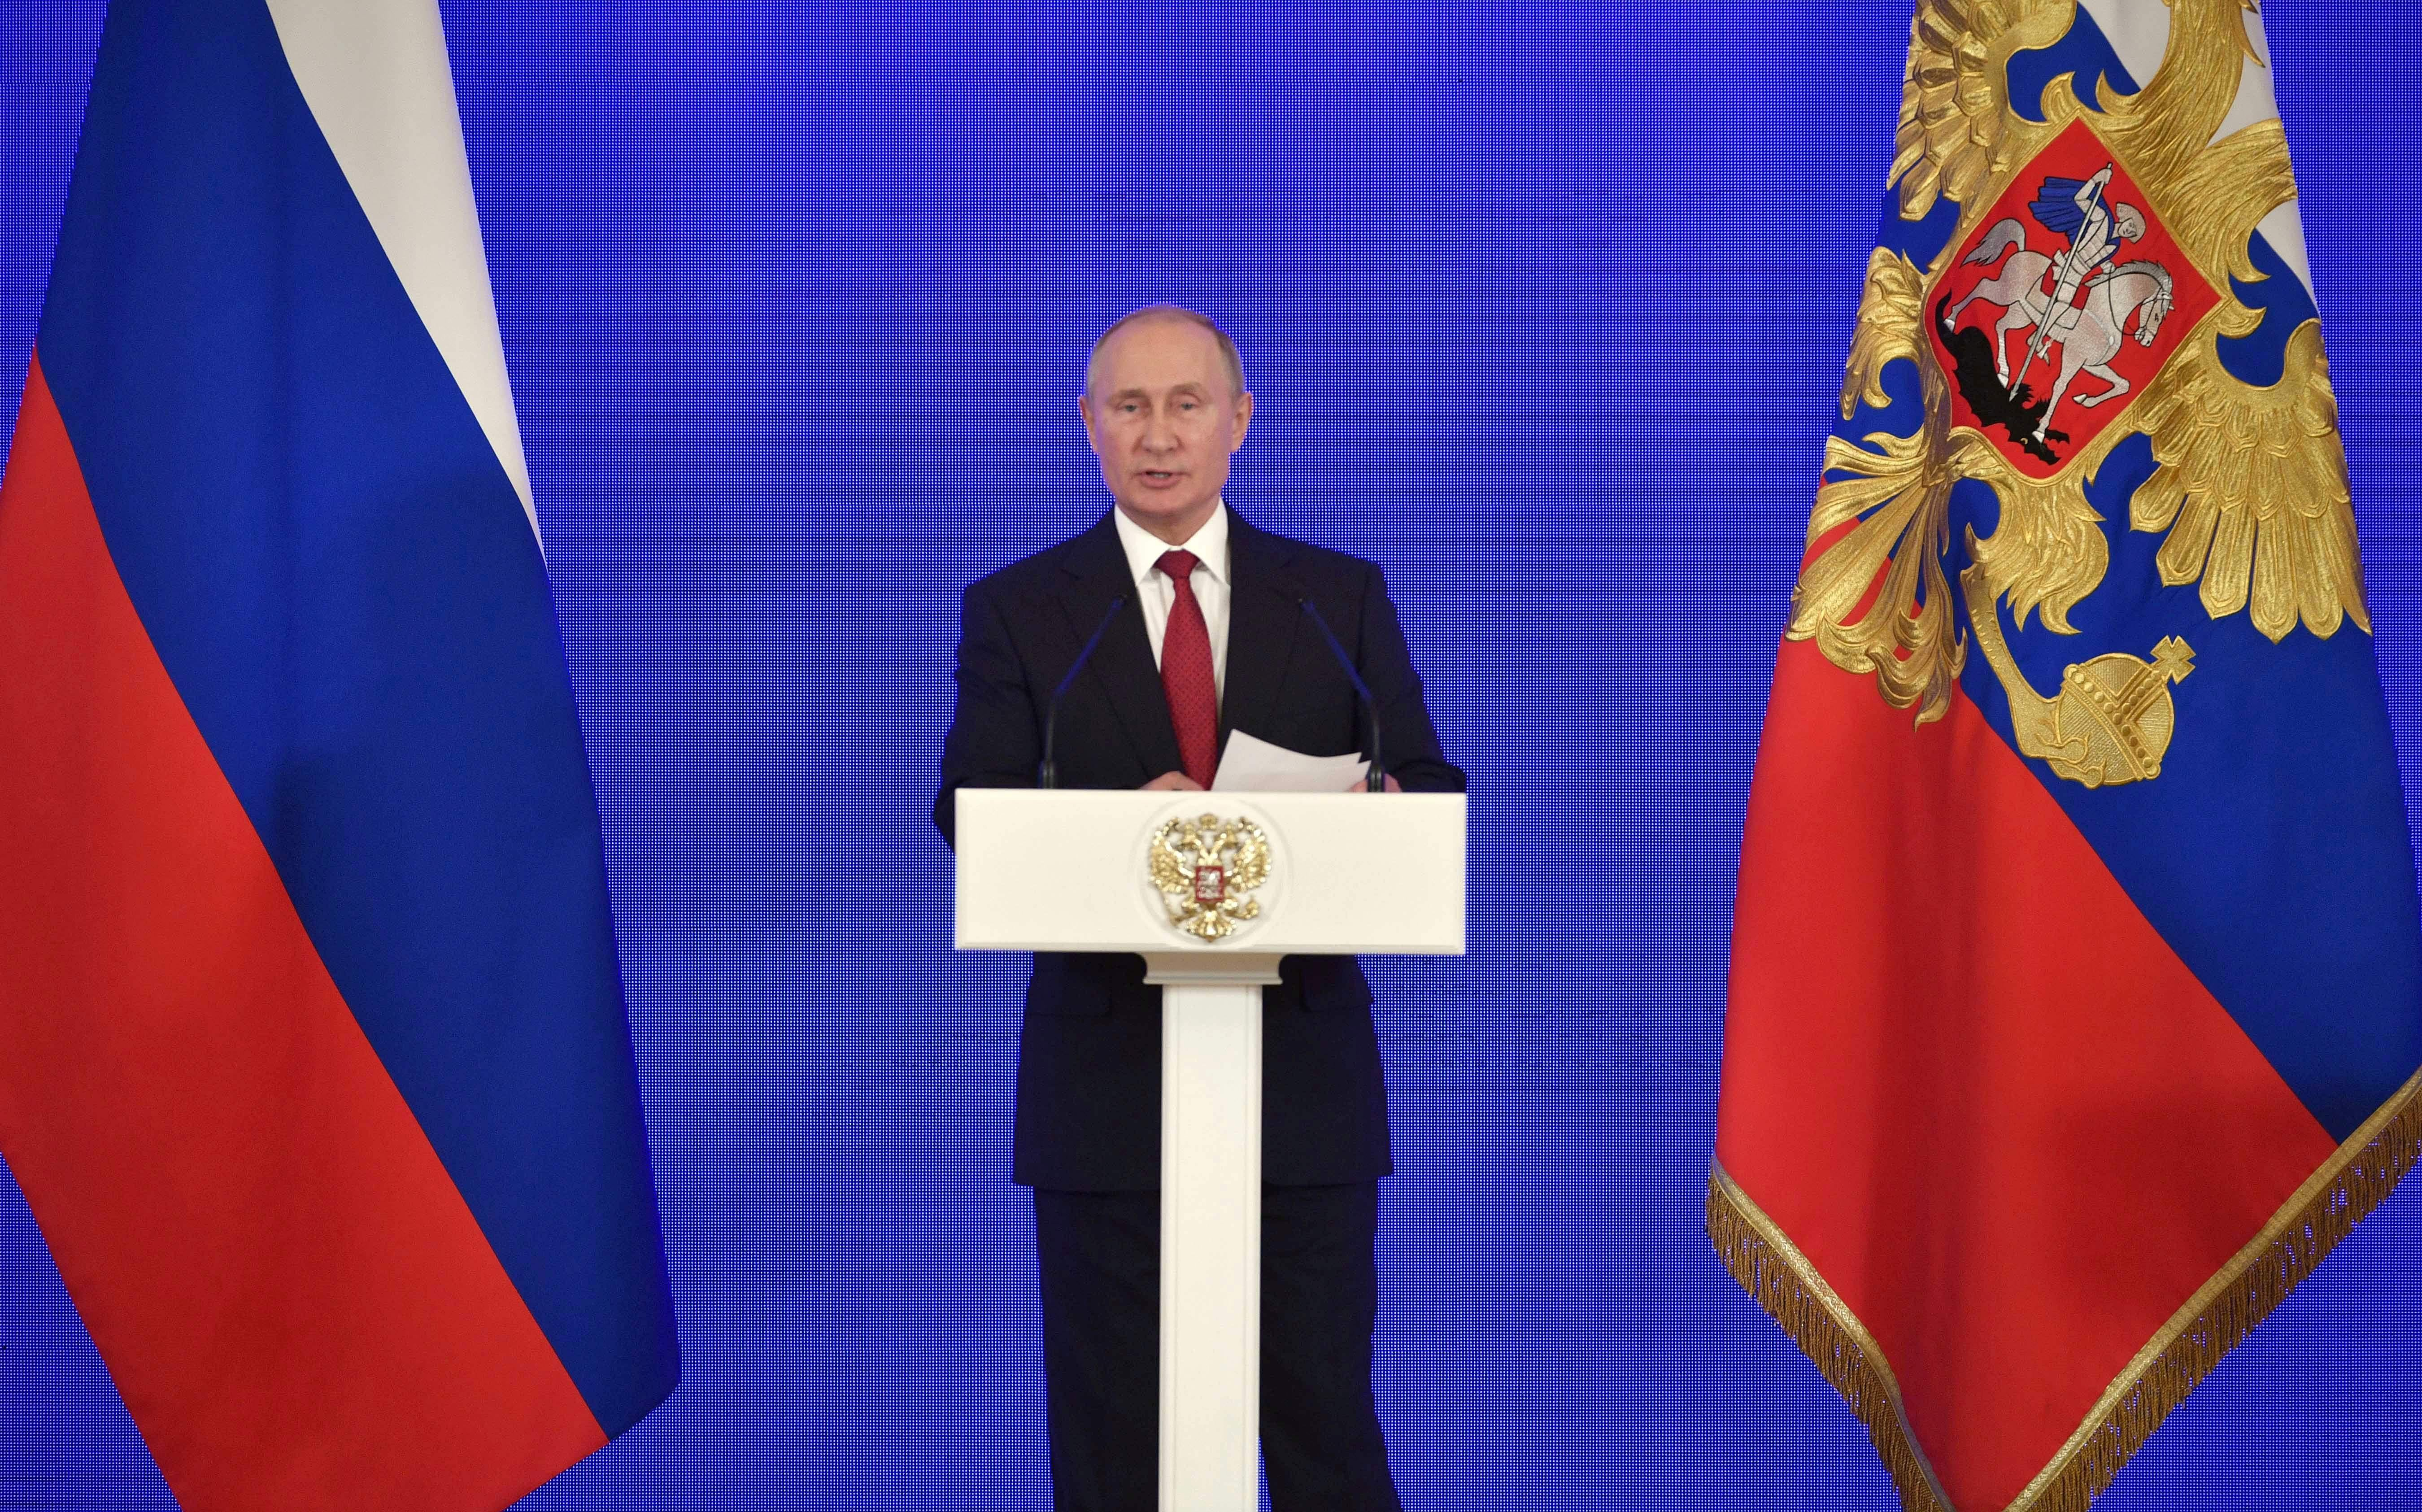 Russia's President Vladimir Putin delivers a speech during a reception in Moscow on November 4, 2018, as a part of celebrations marking Russian National Unity Day.